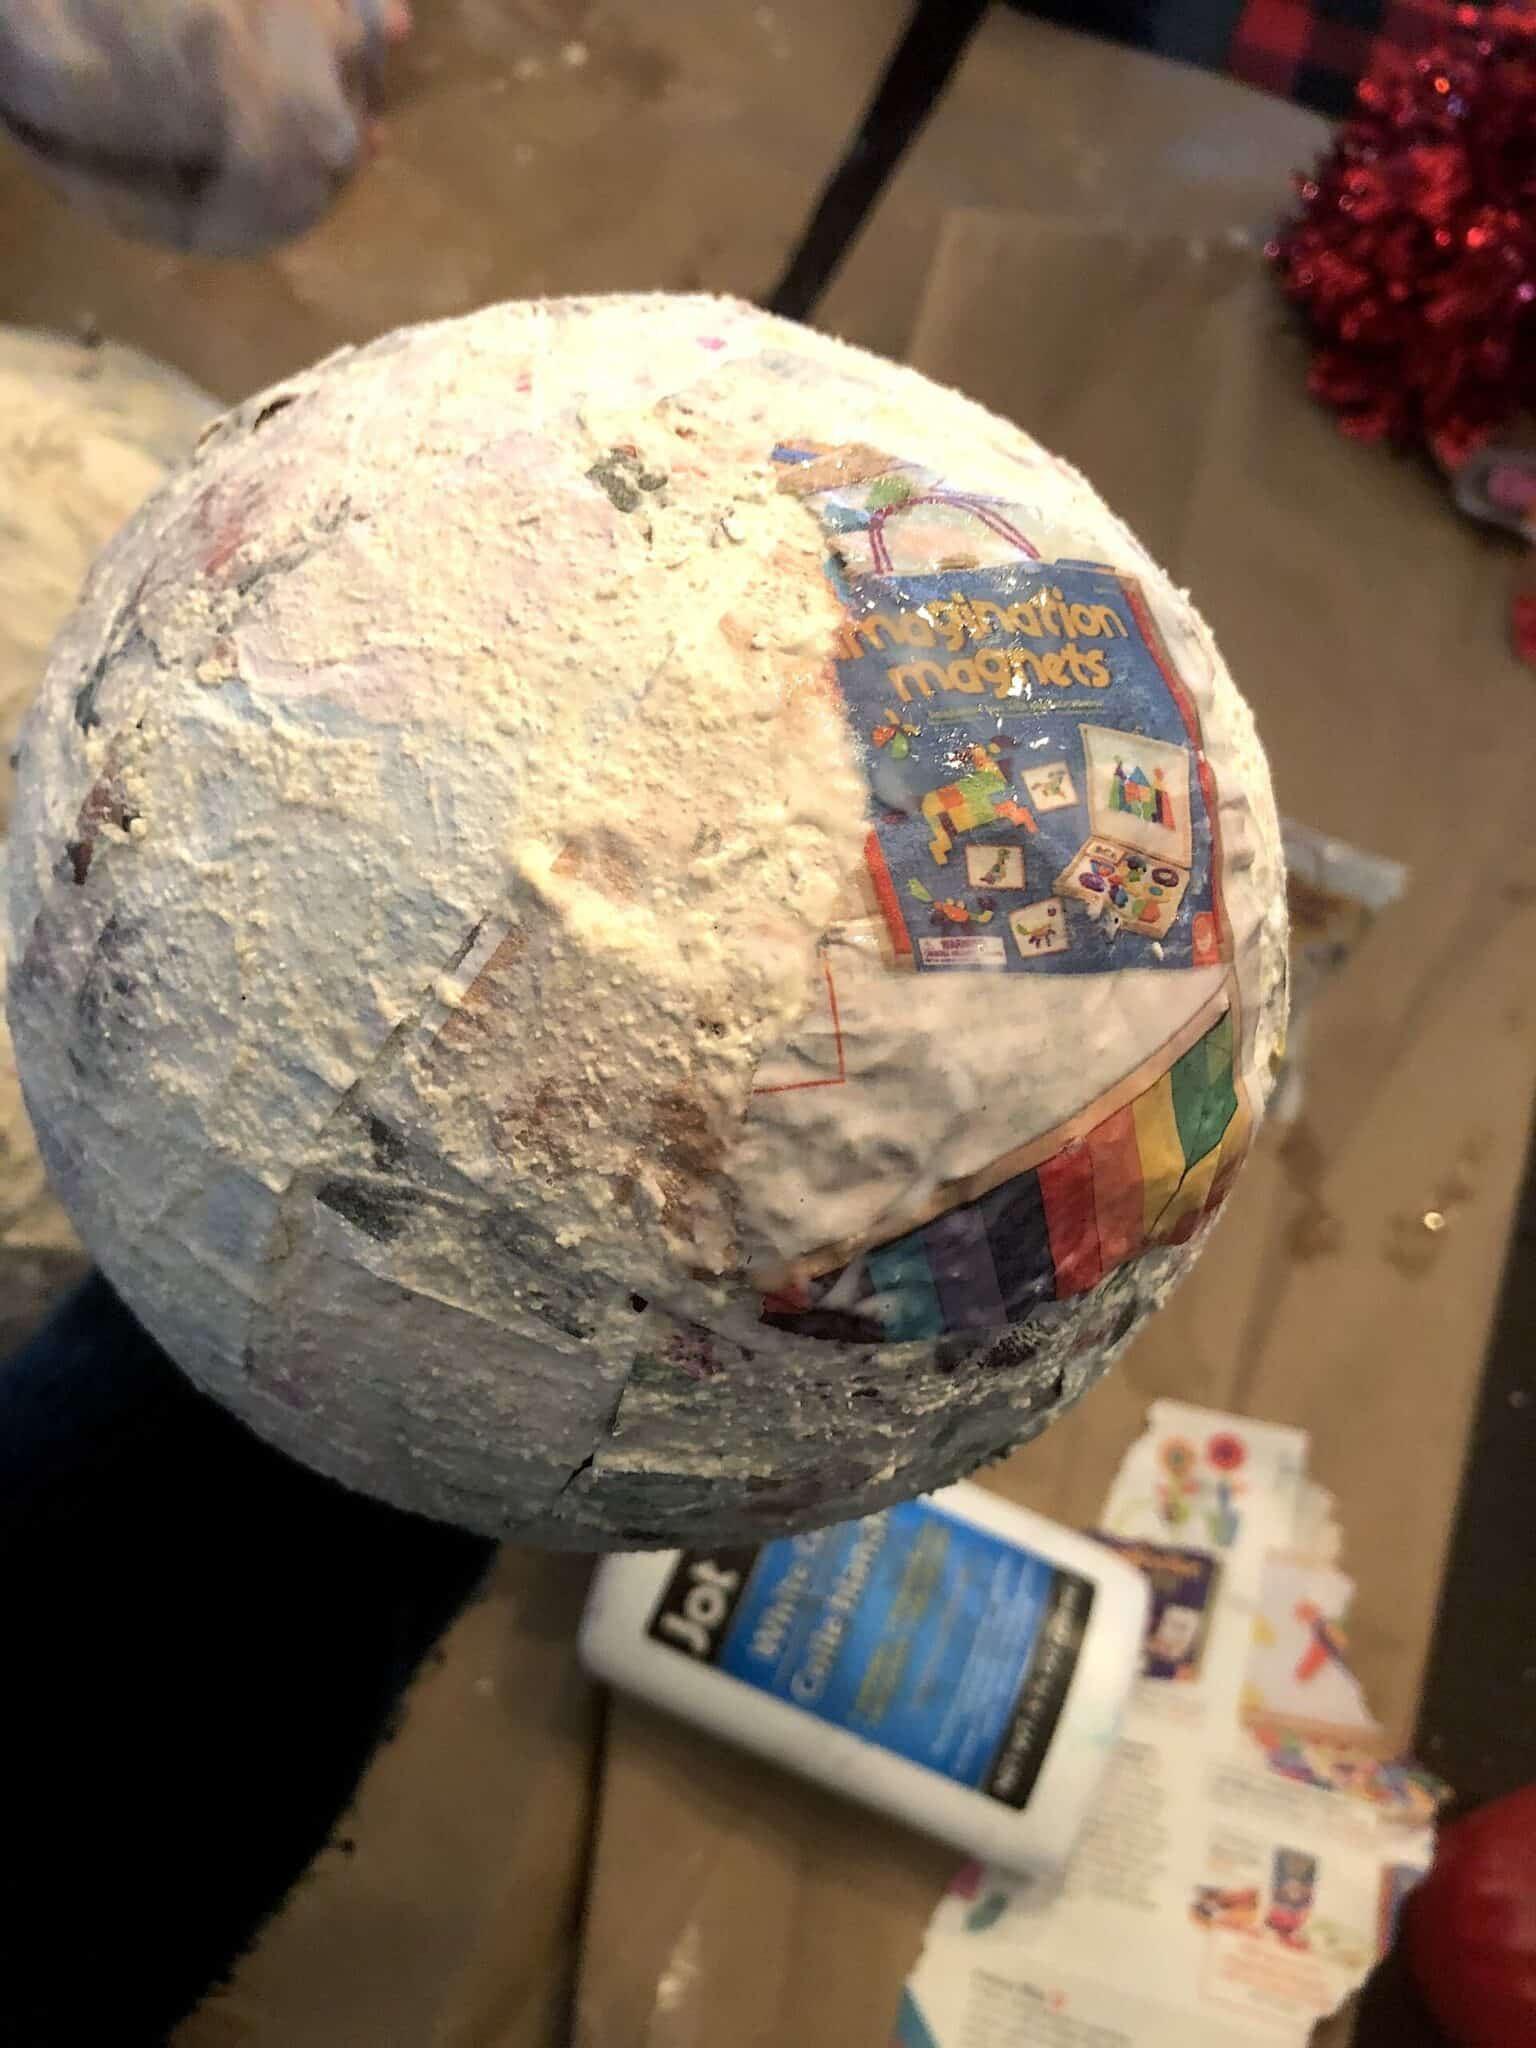 These Awesome Paper Mache Projects For Kids Will Be A Hit For Any Age Group! Whether It's A Solar System or An Animal, These Art Craft Projects Are A Must See! #solarsystemprojectsforkids #papermache